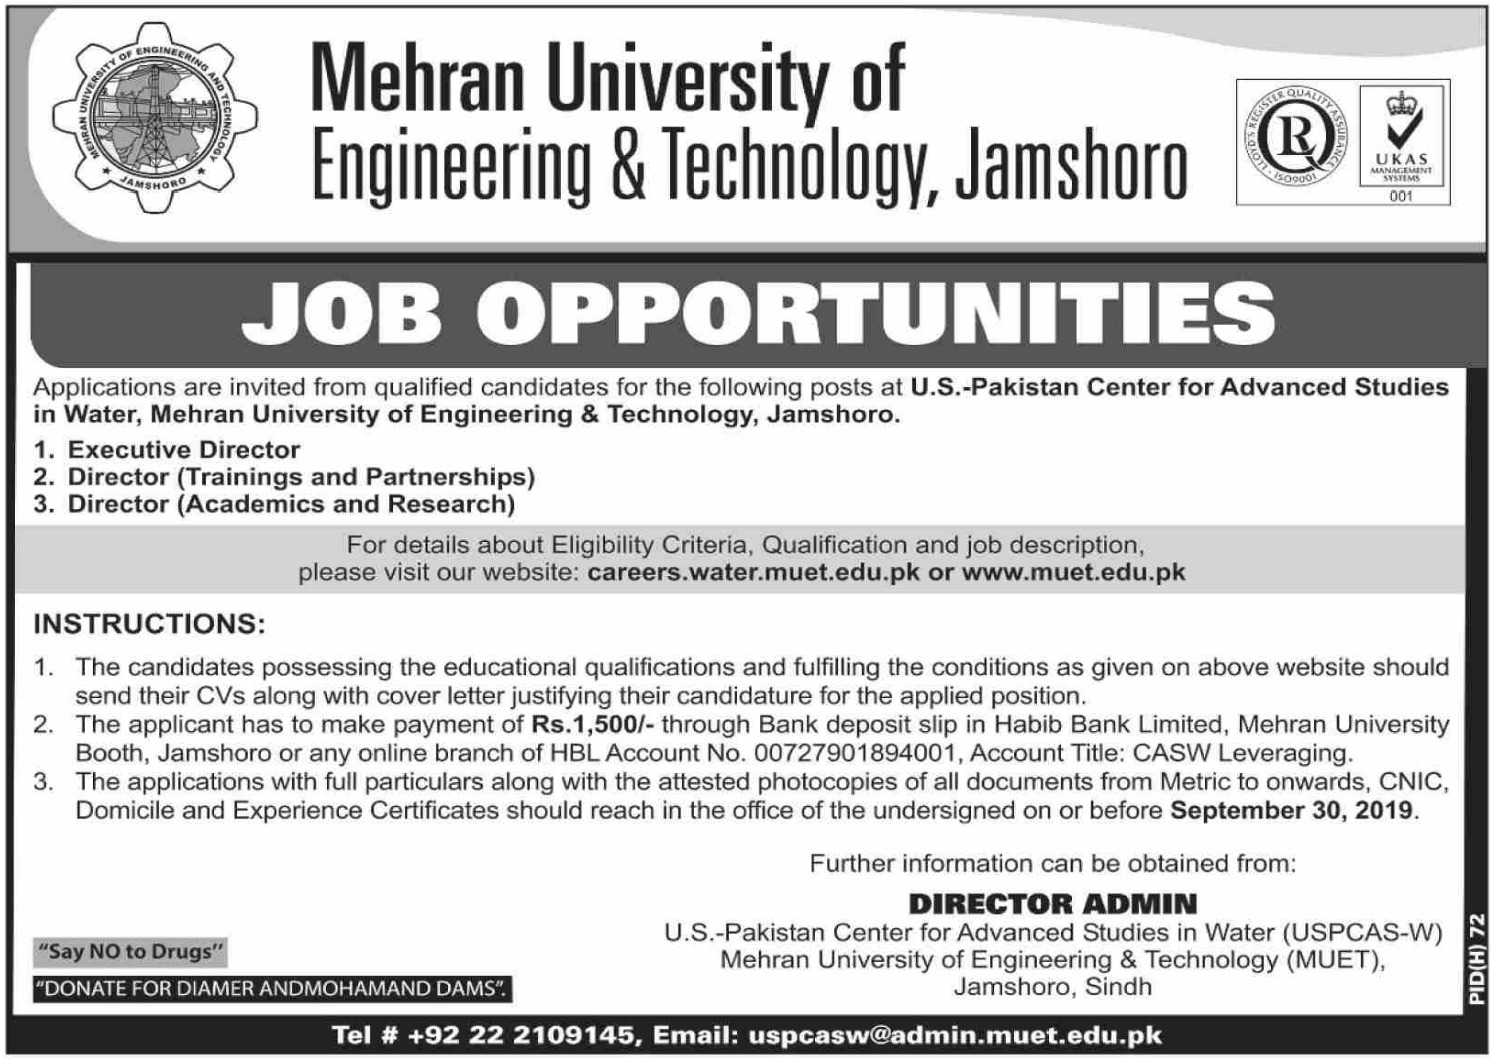 Mehran University of Engineering & Technology MUET Jobs 2019 Jamshoro Sindh